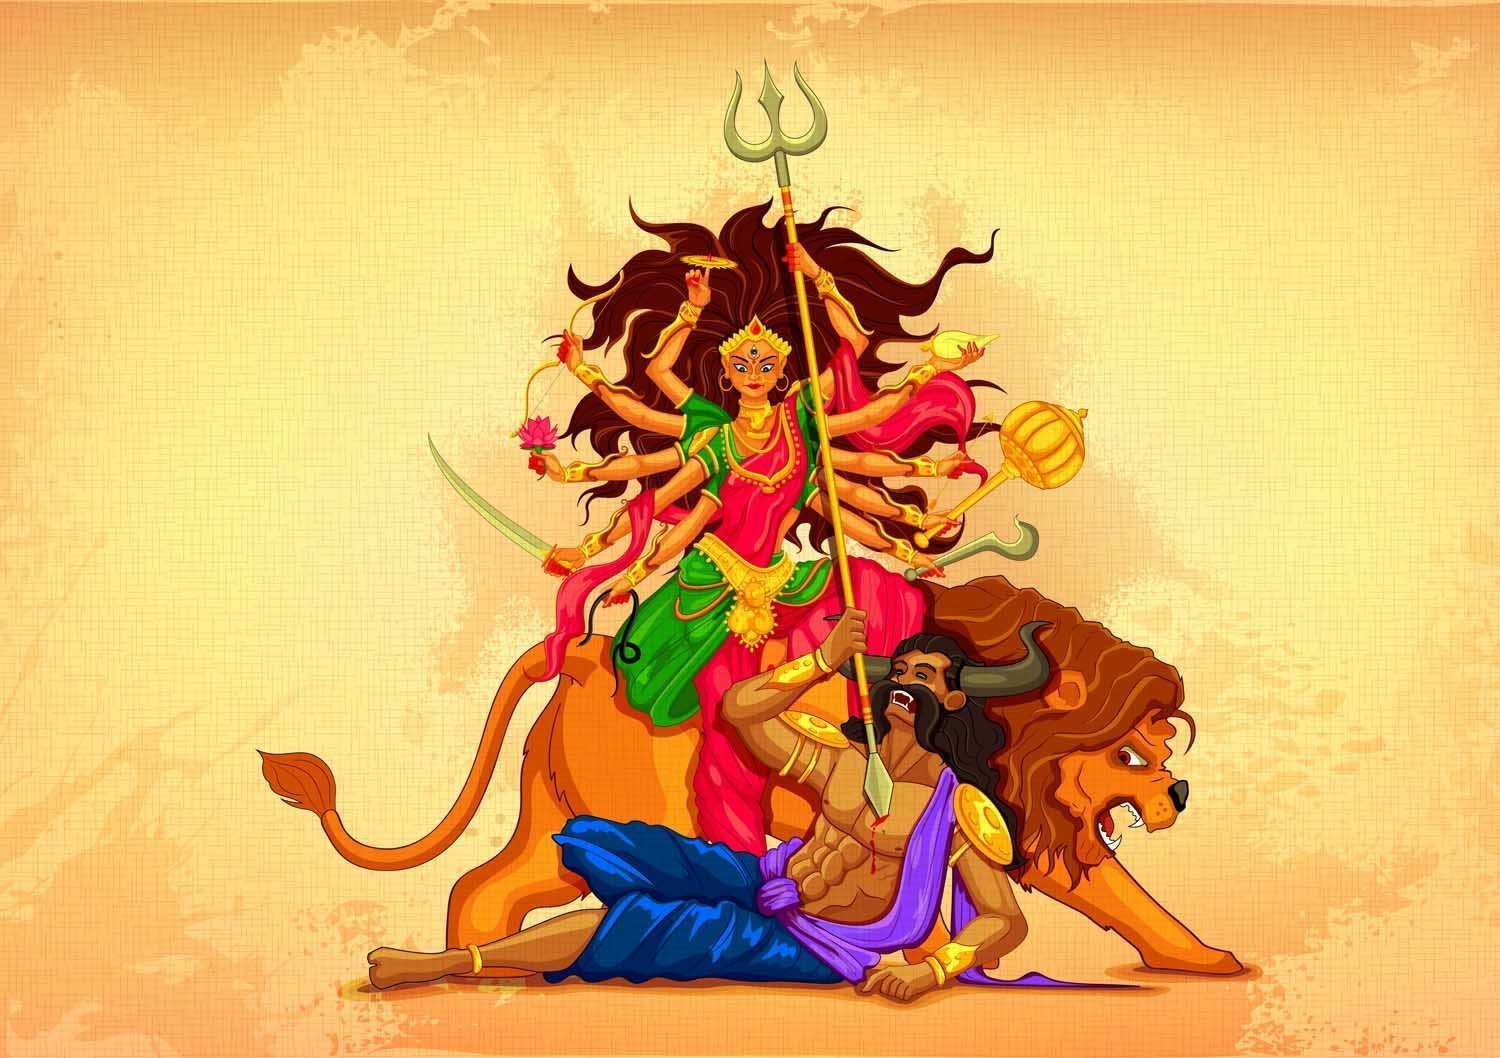 Life Lessons to learn from 9 forms of Goddess Durga